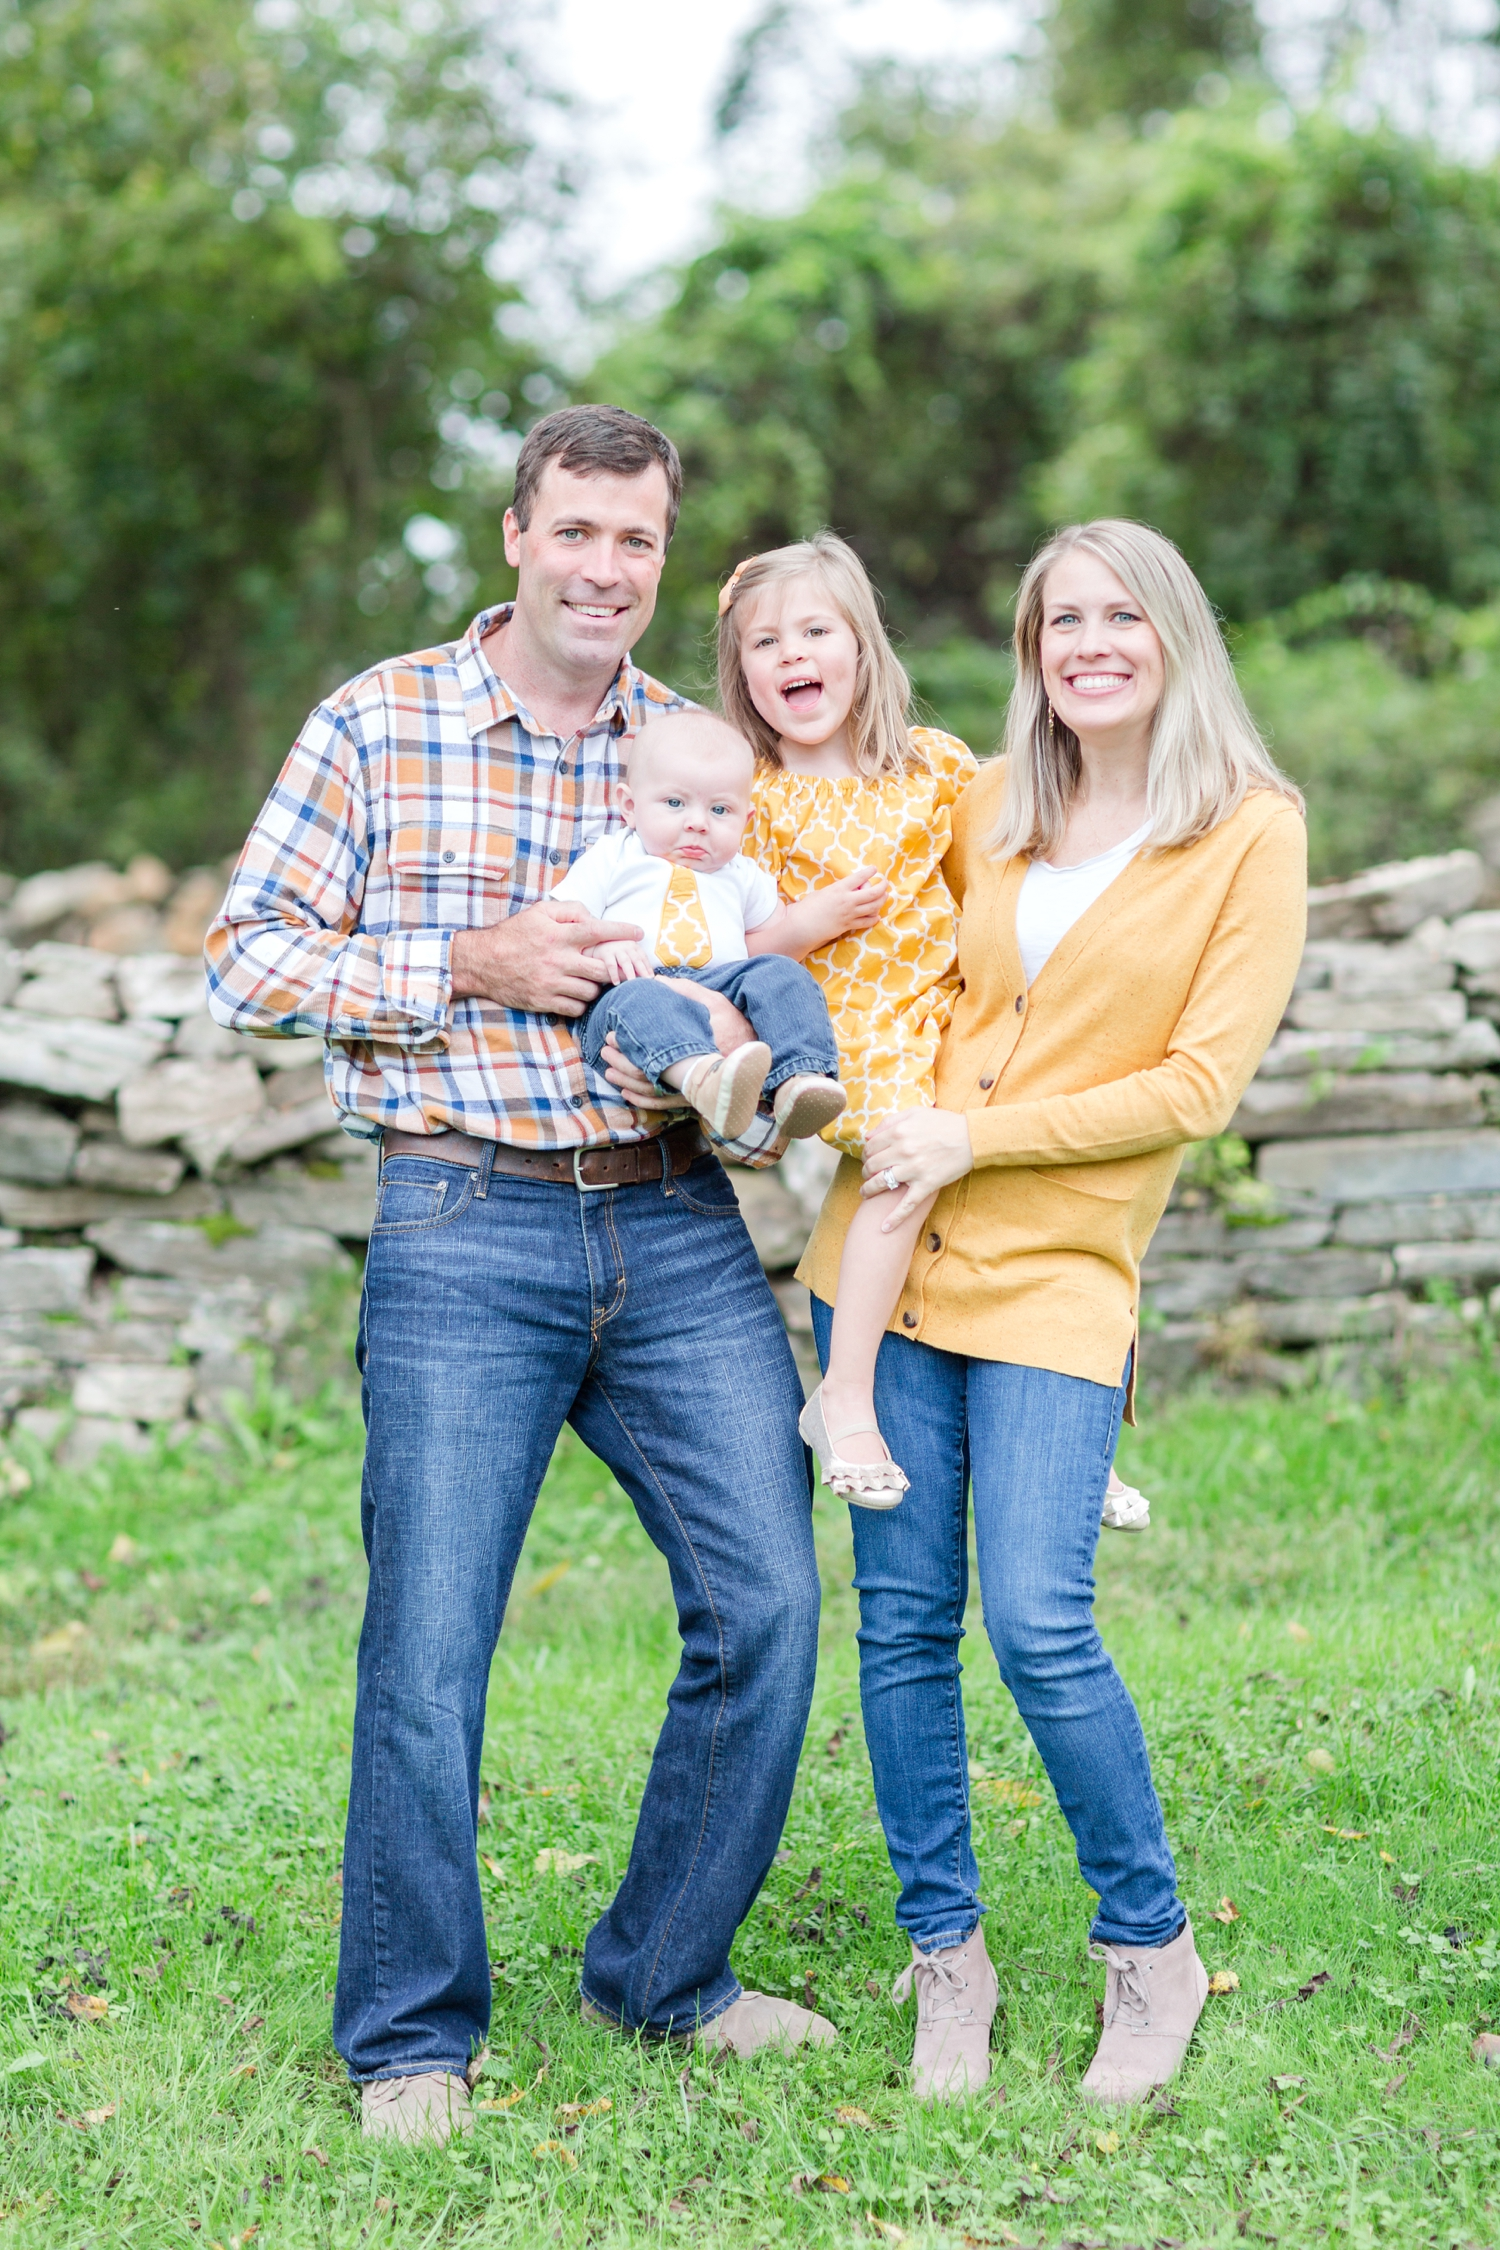 Ryan Family 2018-2_Cromwell-Valley-Park-Towson-Maryland-Family-Photographer-anna-grace-photography-photo.jpg